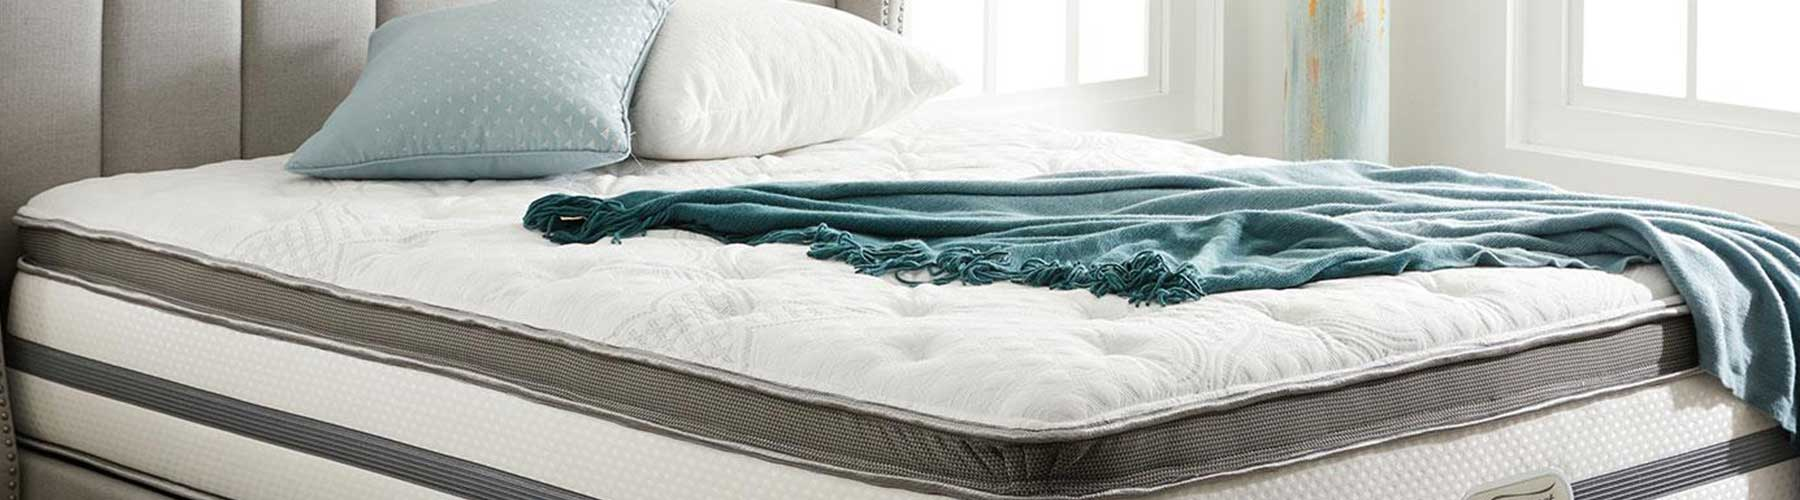 Mattress Cleaning Service in Calgary